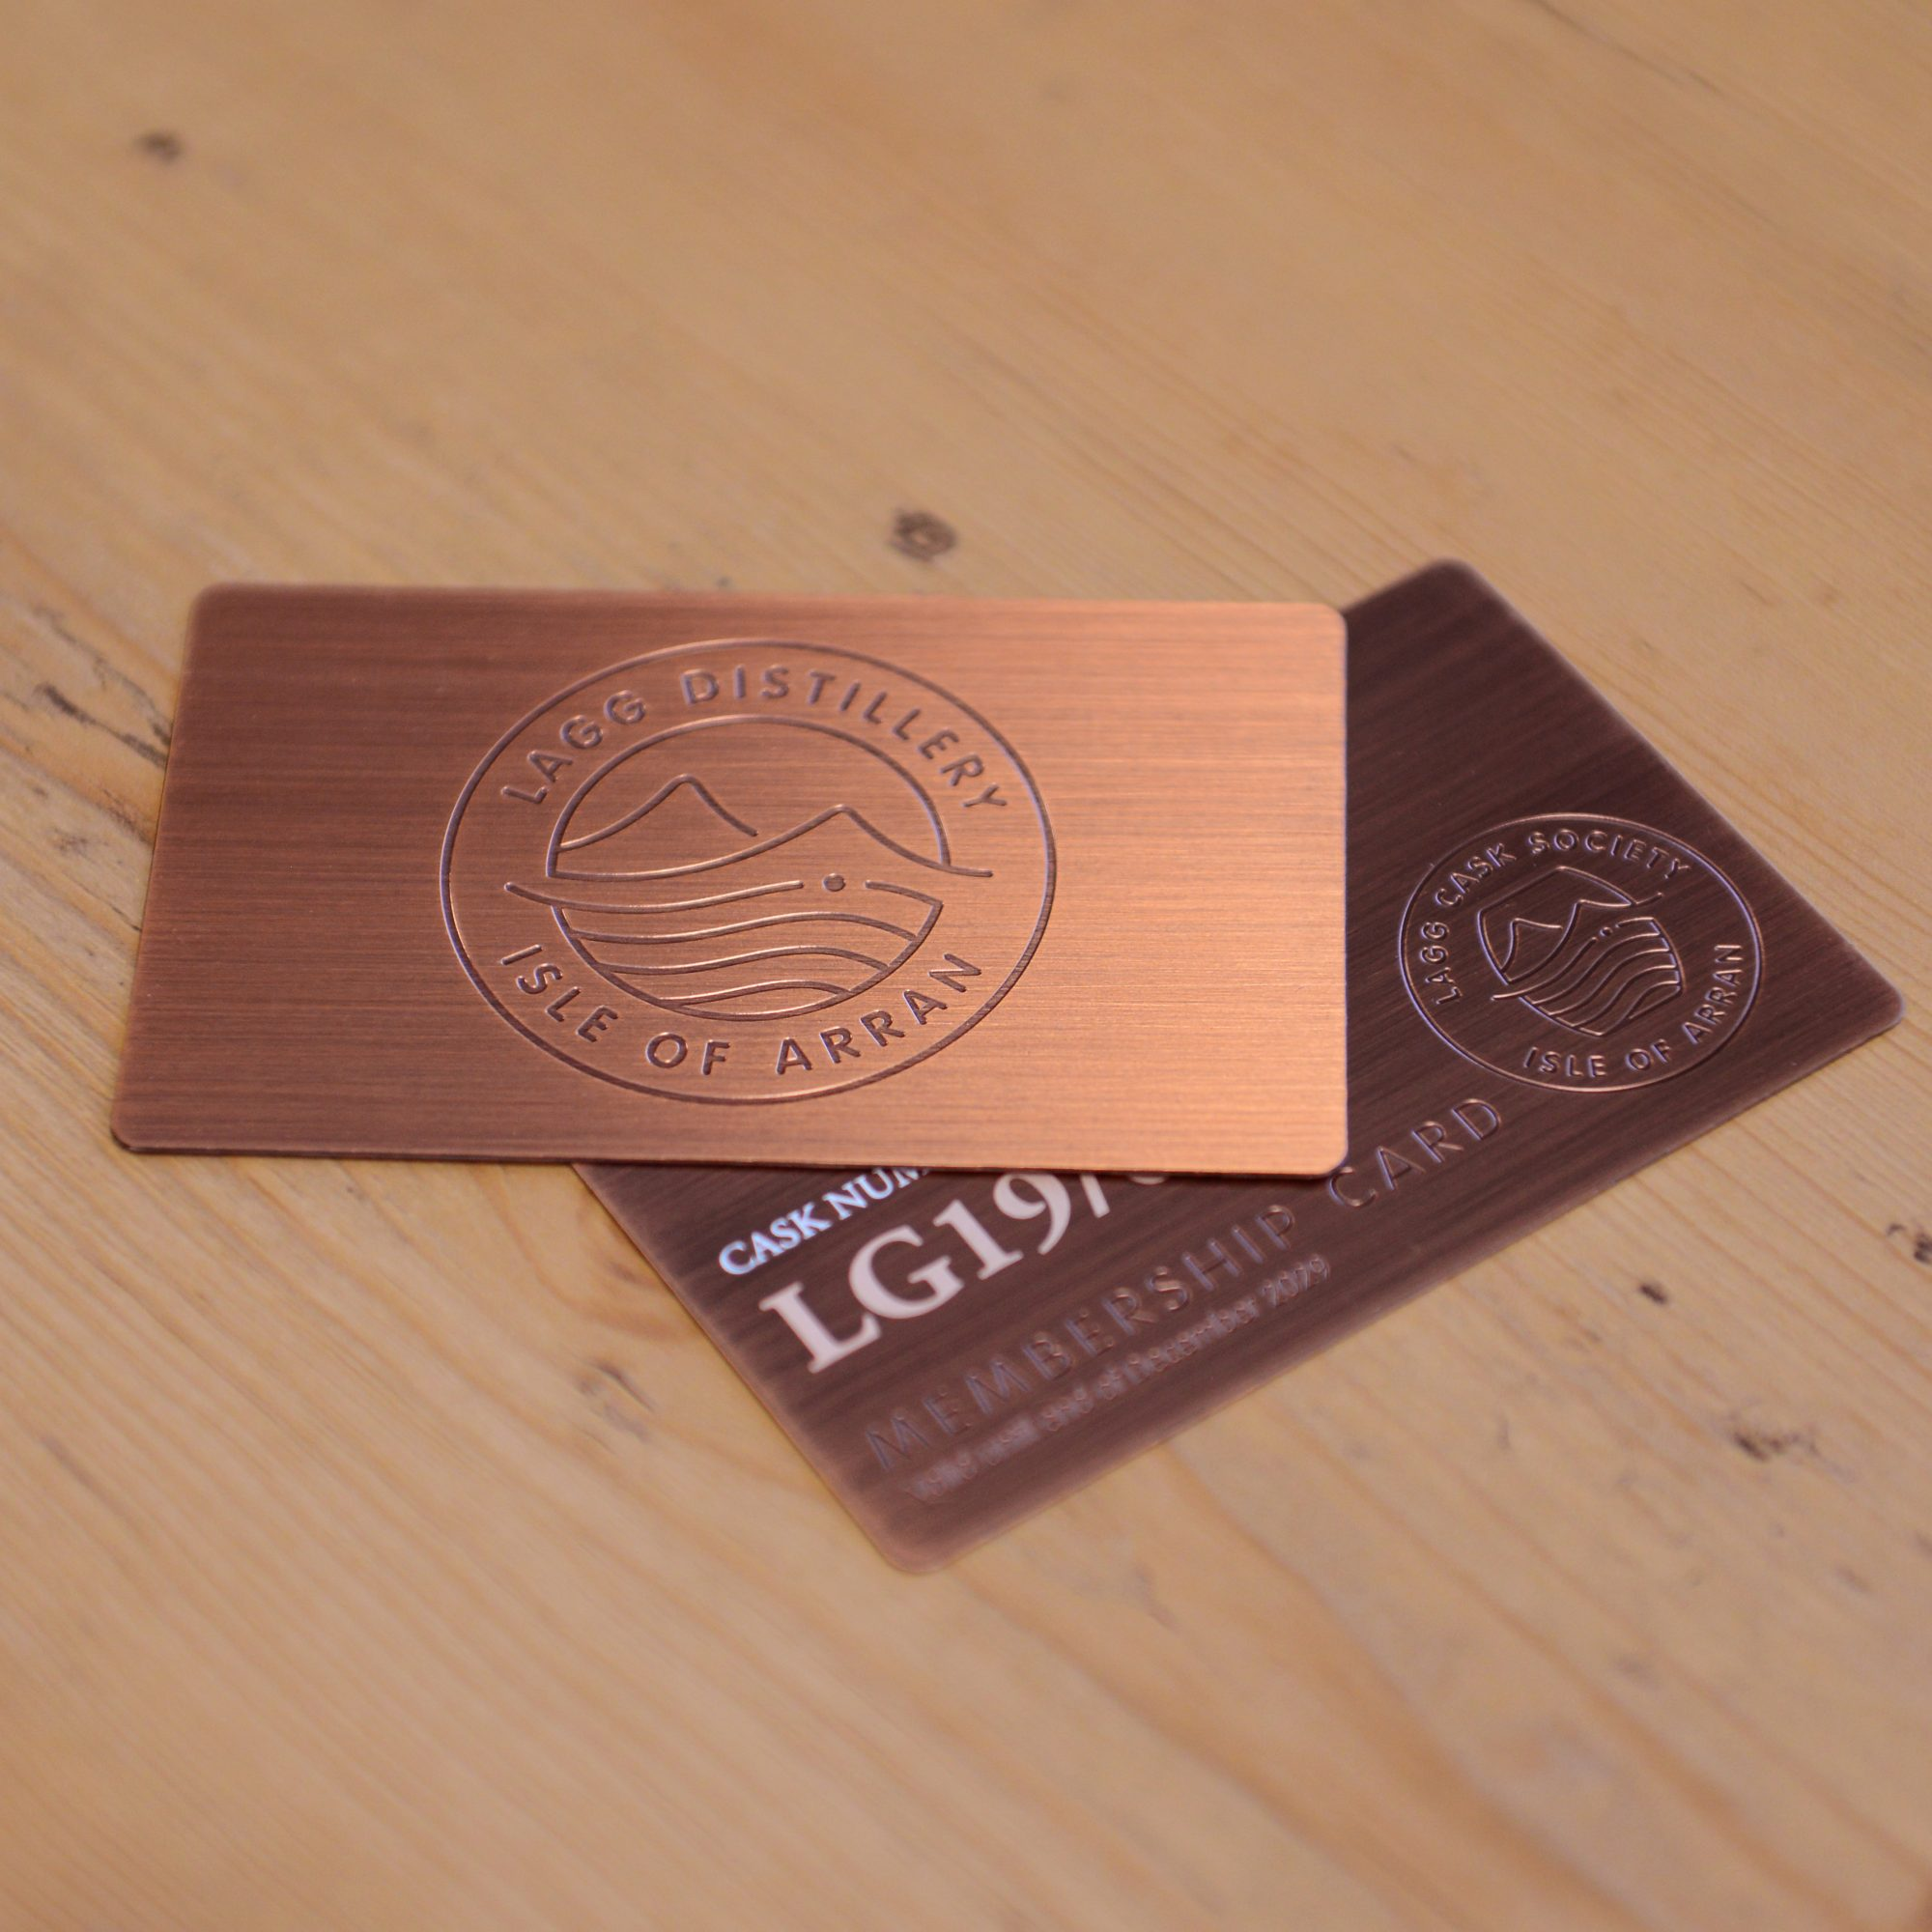 Brushed Antique Copper Cards - Lagg Distillery